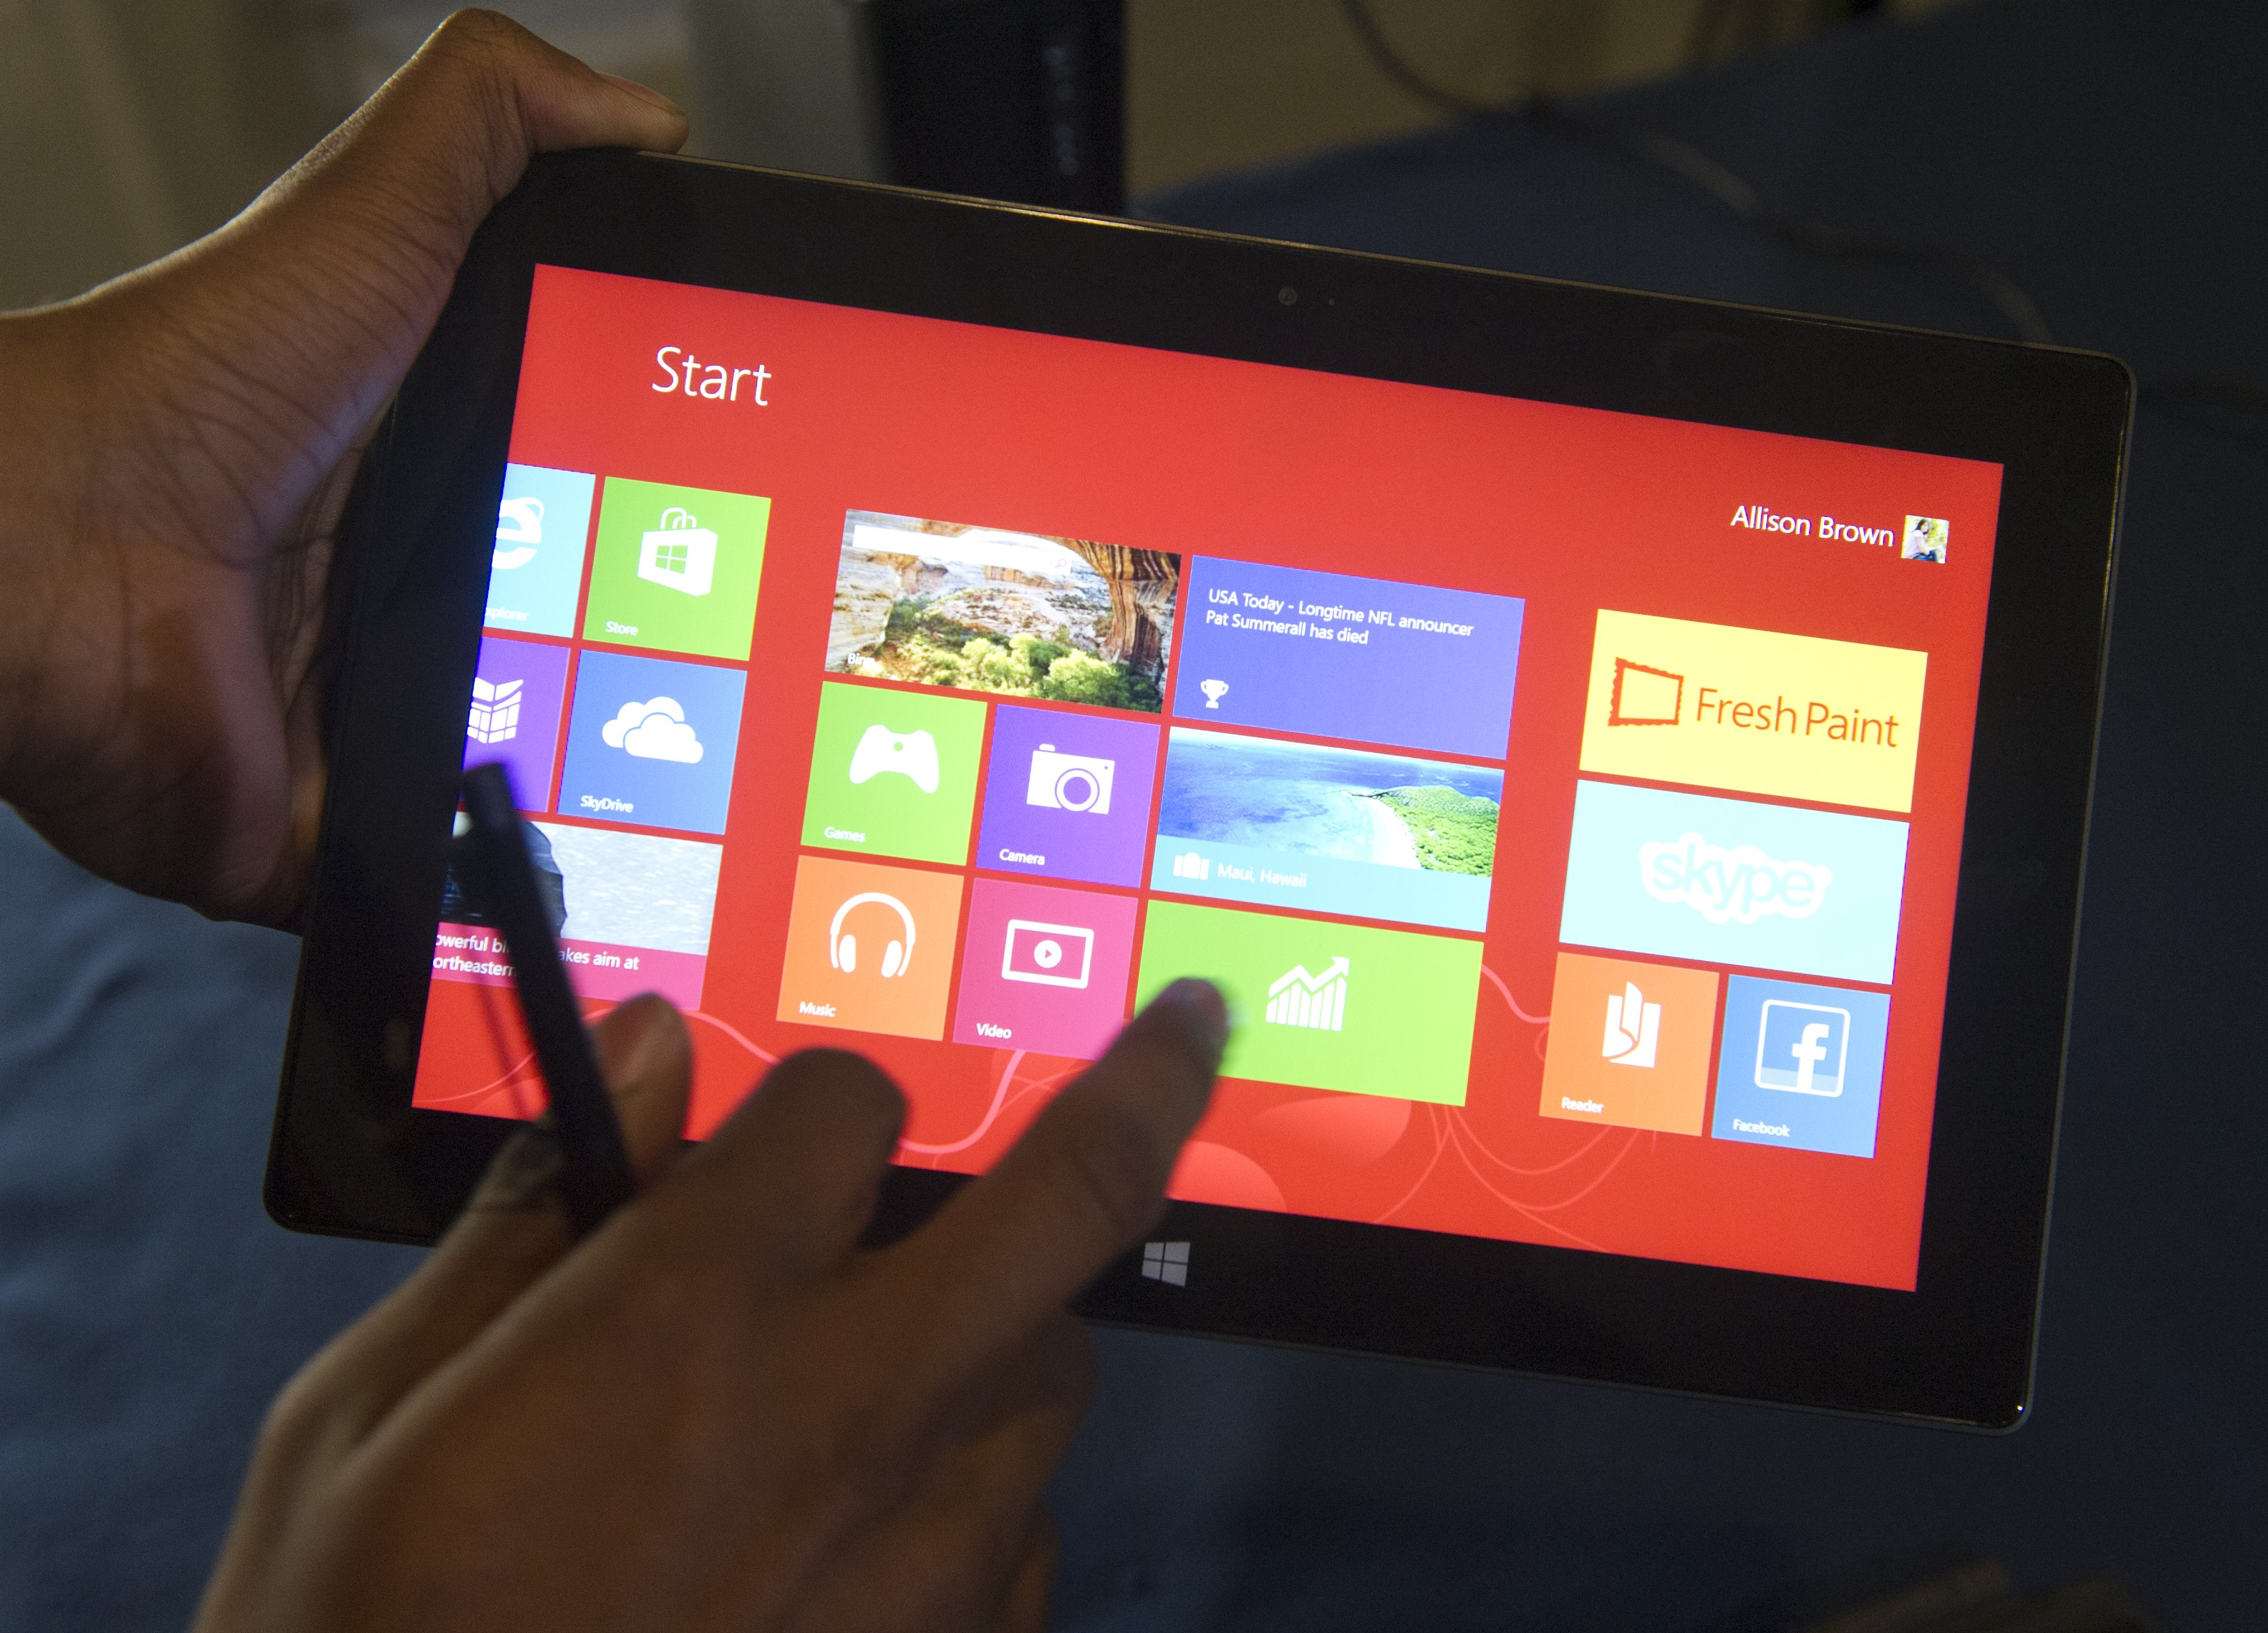 Microsoft Windows 8 1 Review: a More Customizable, Coherent